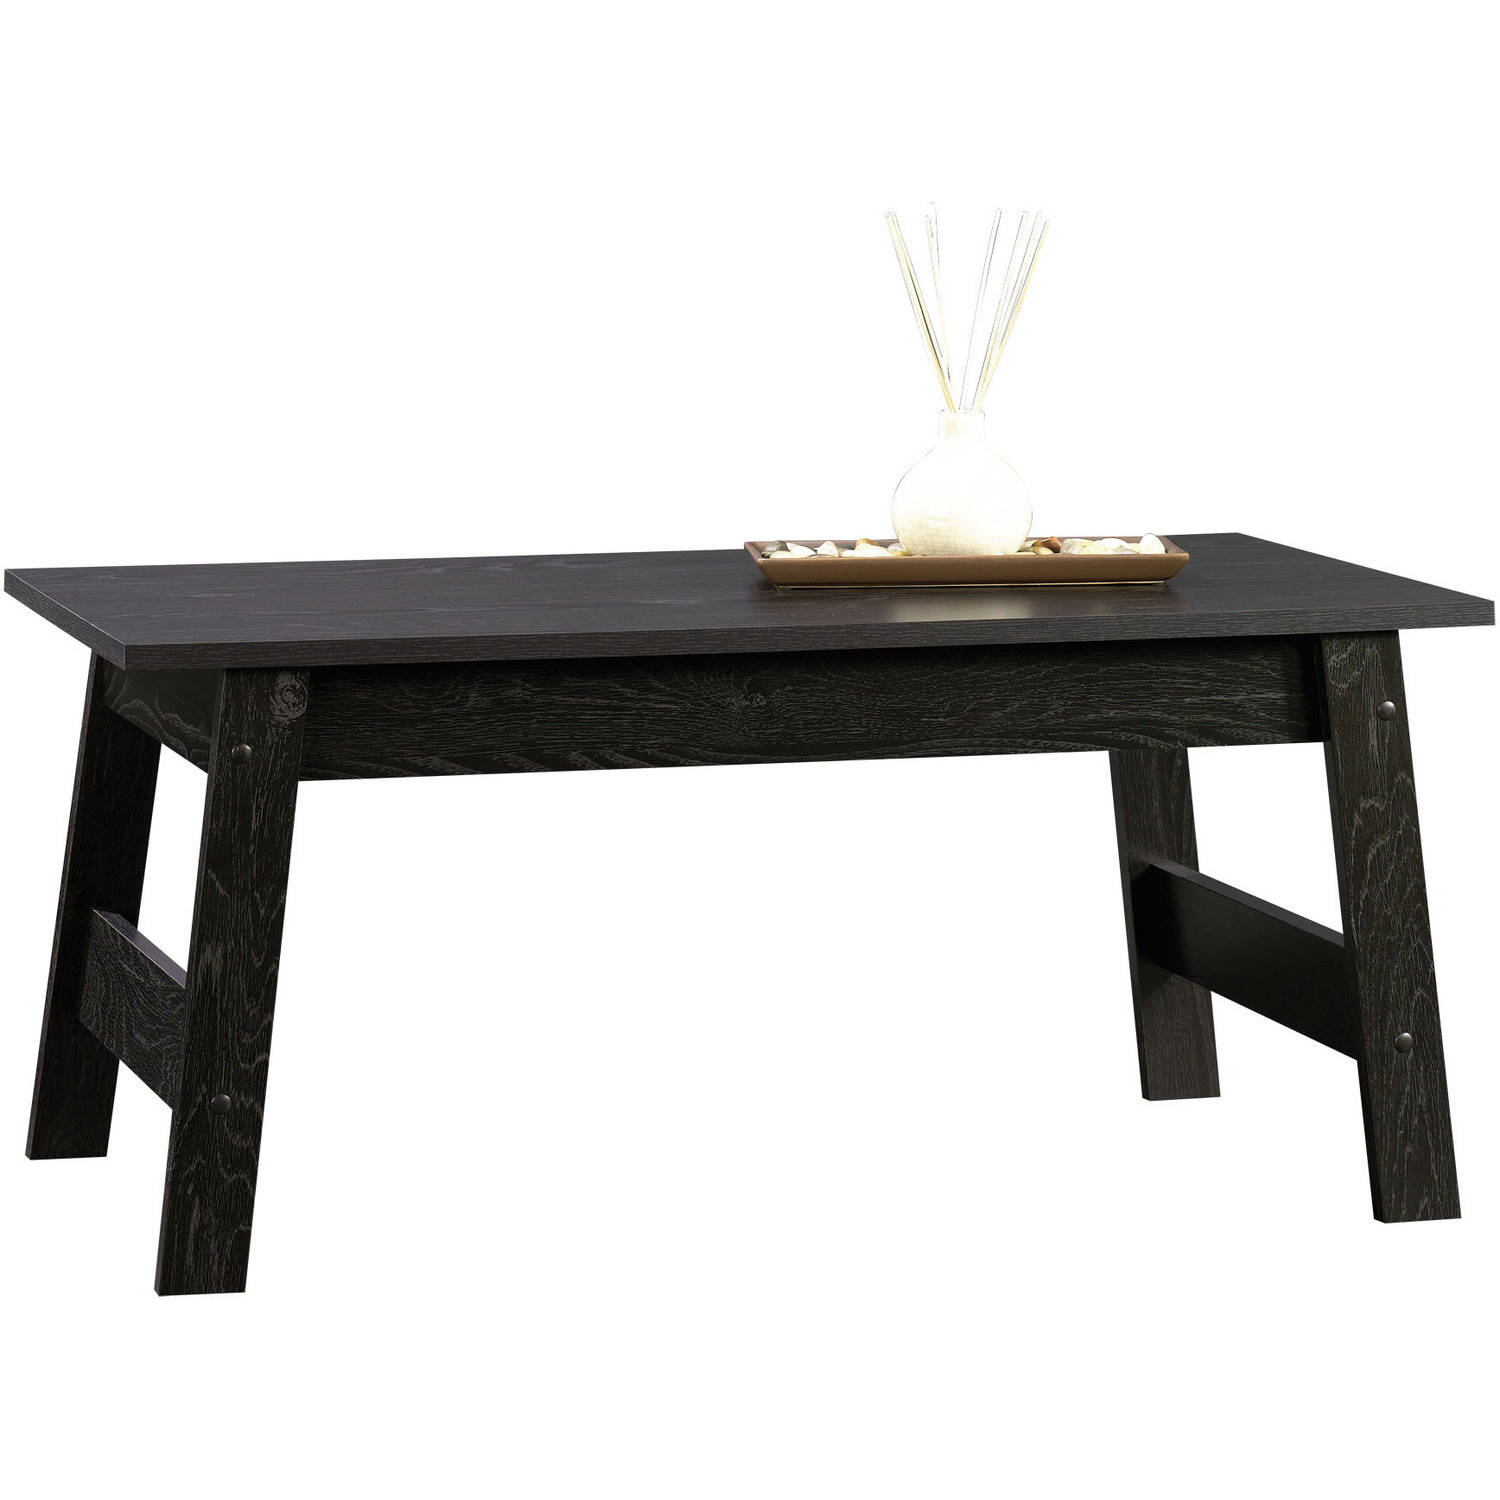 Sauder Beginnings Collection Coffee Table, Black